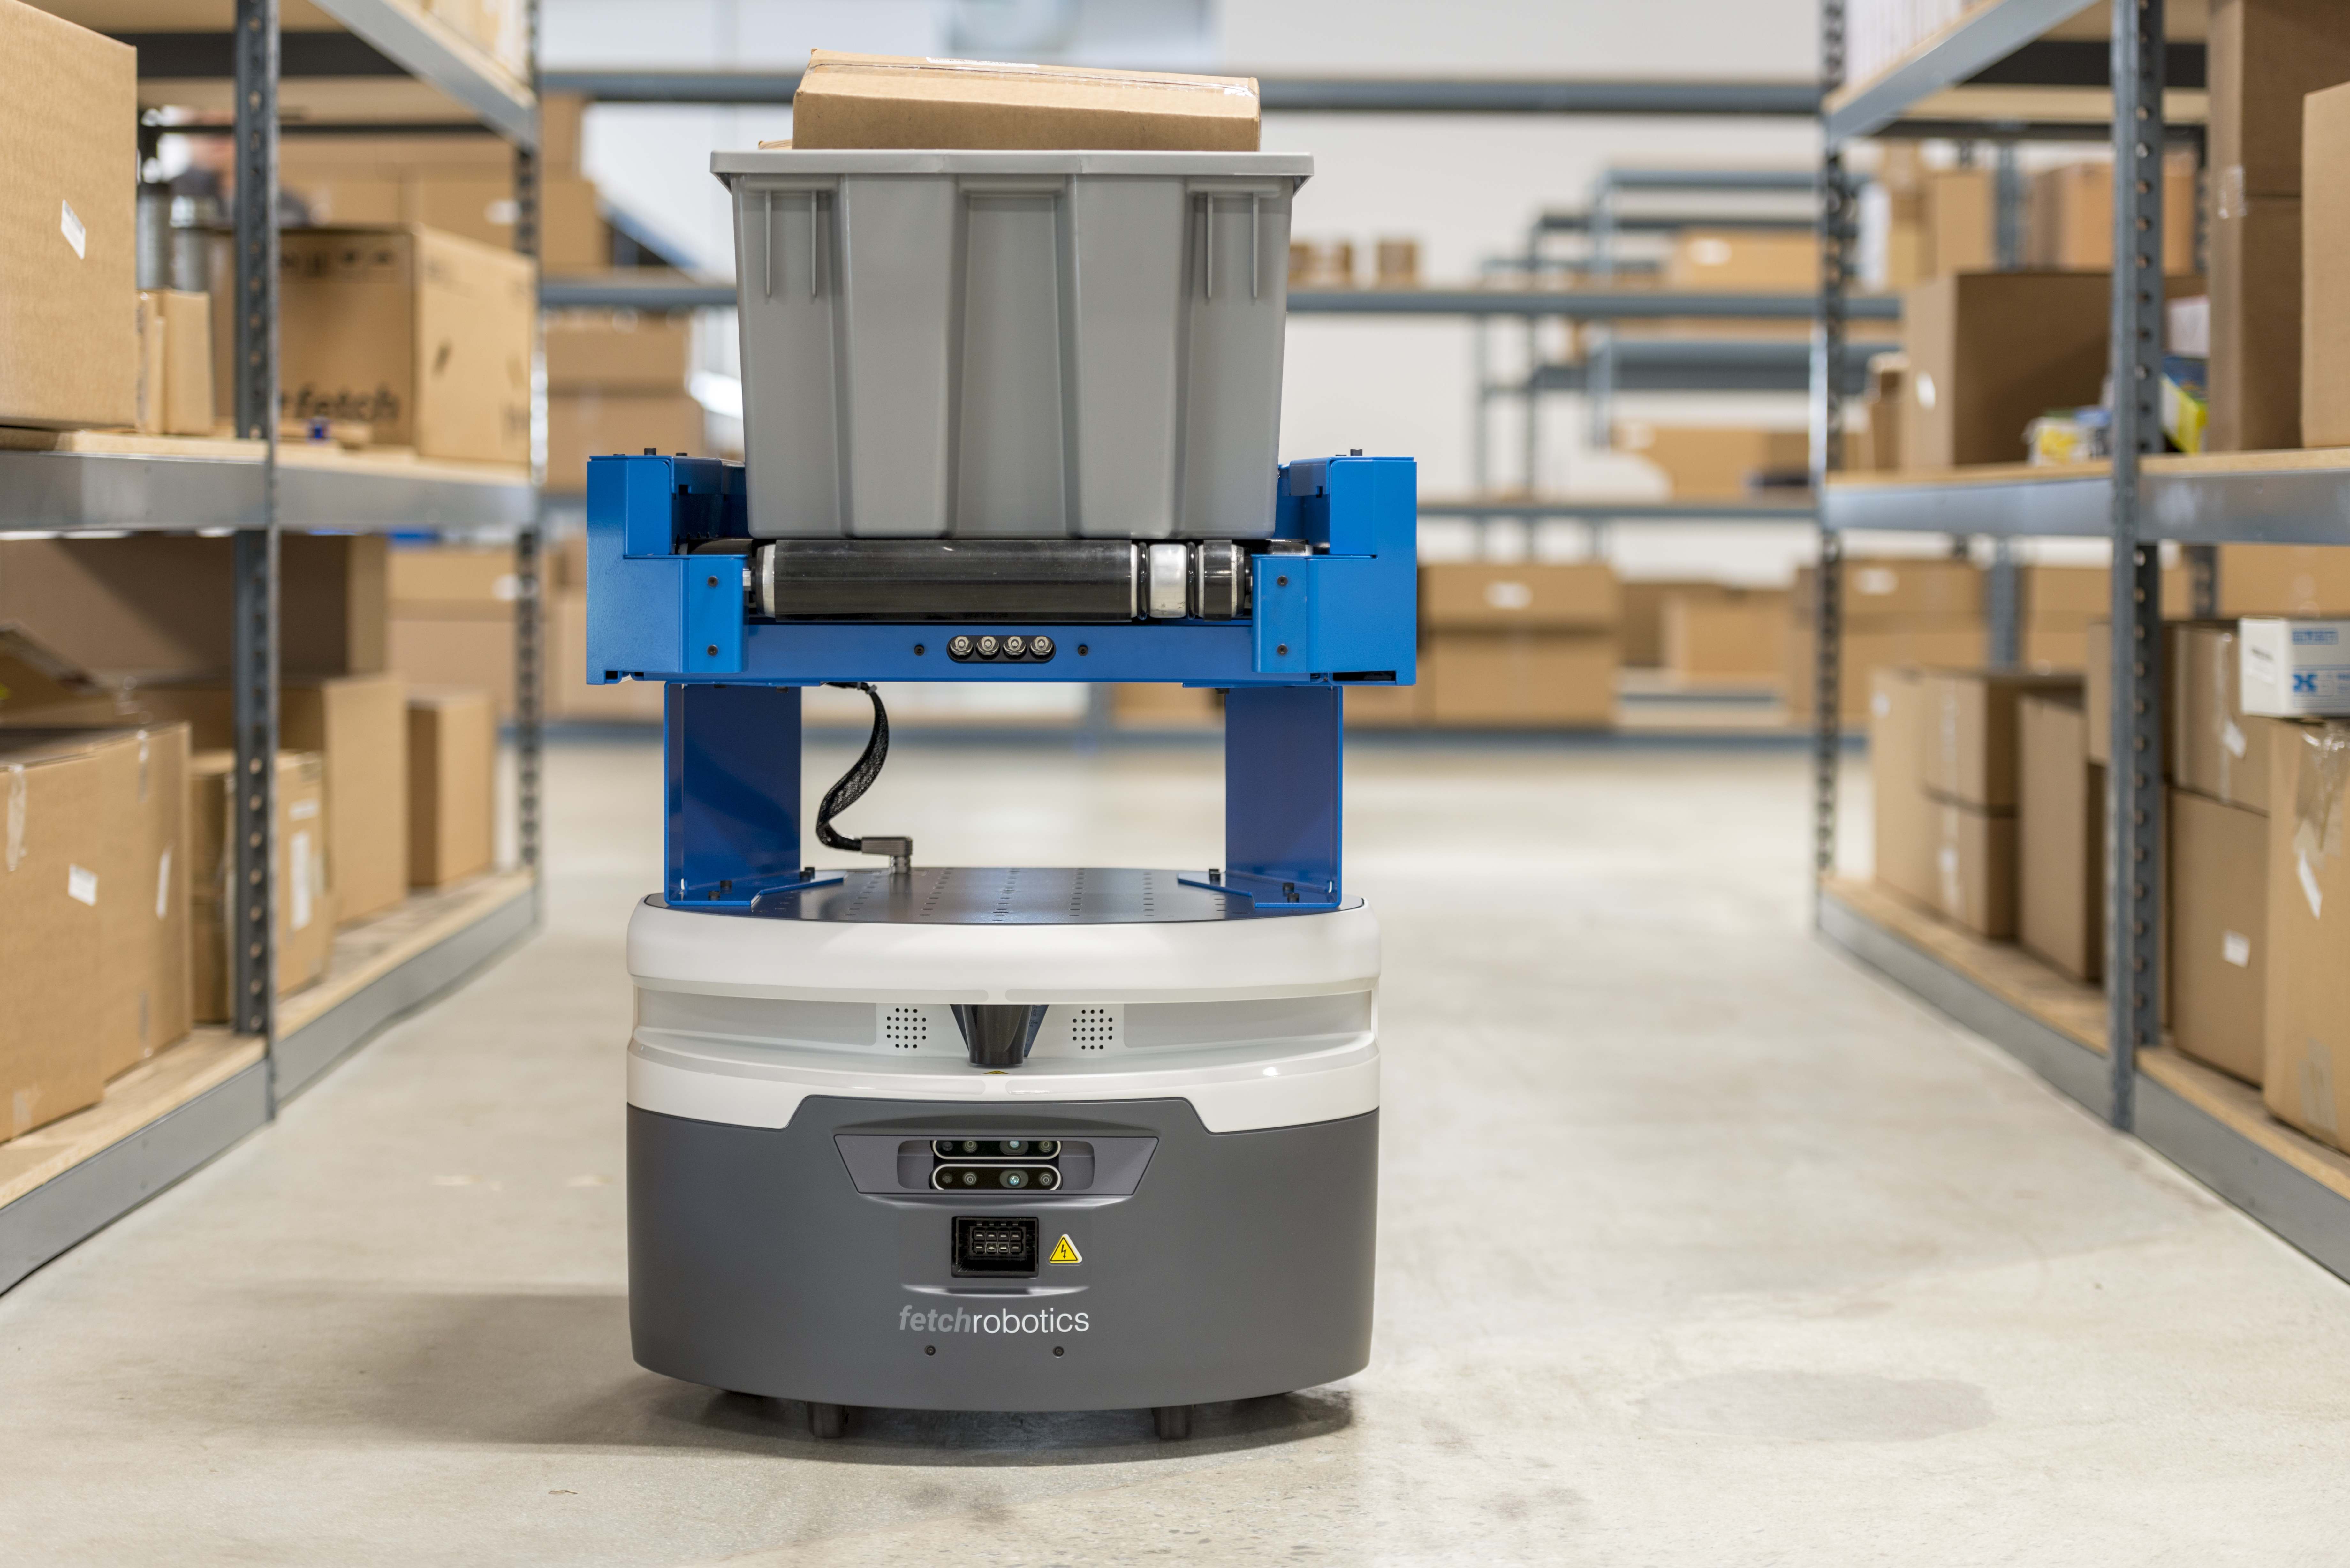 Fetch adds two new robots to its warehouse automation army   TechCrunch